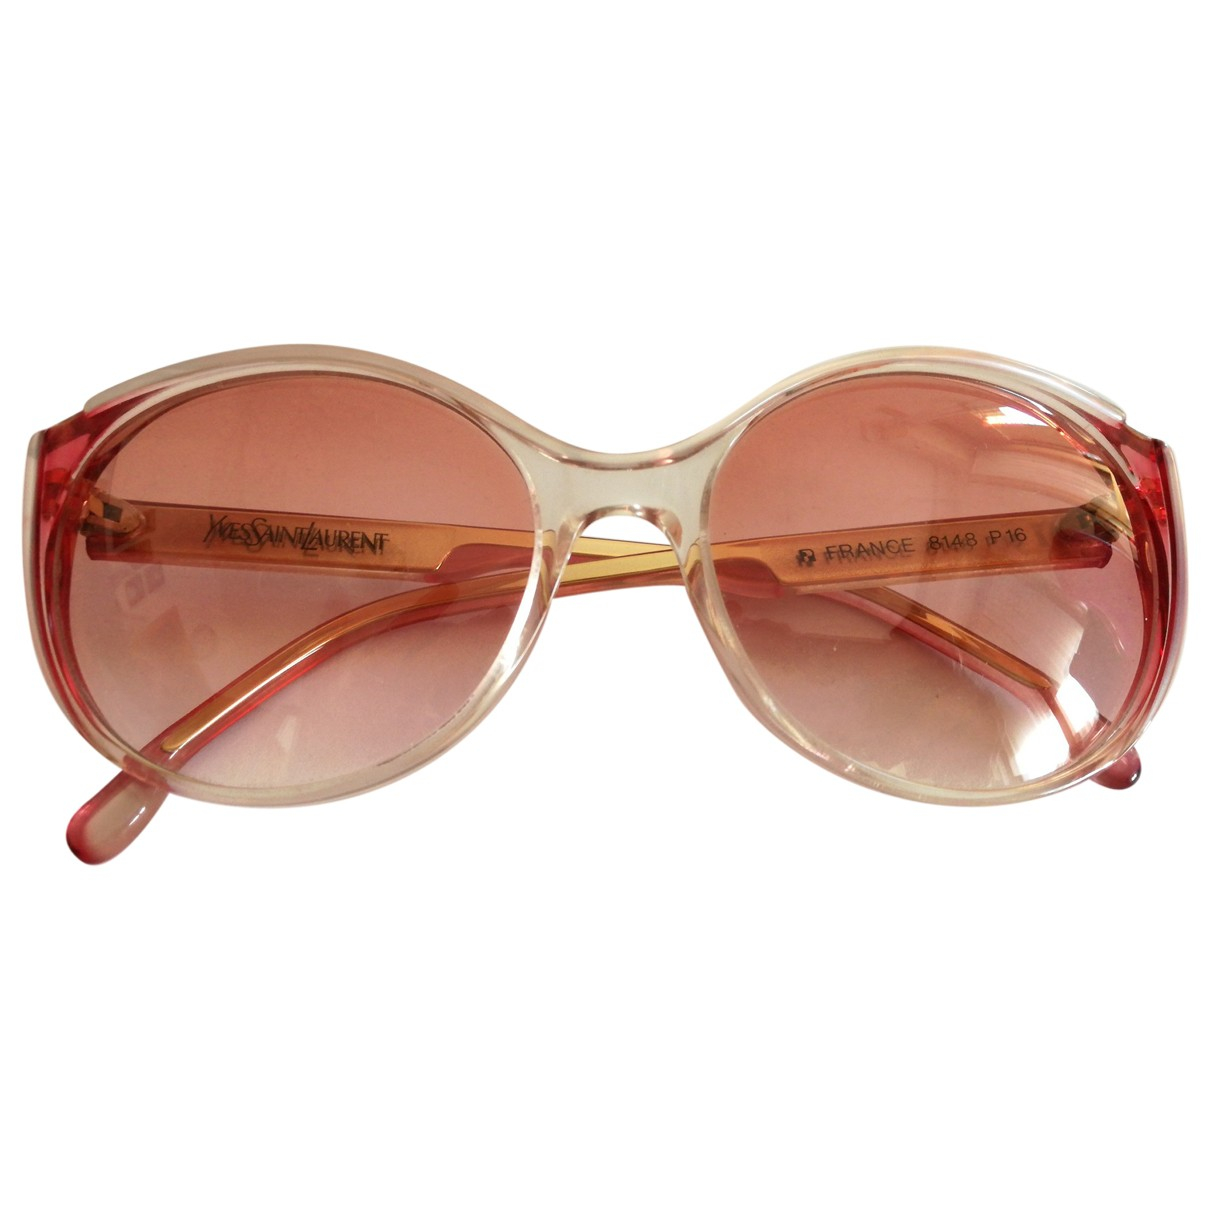 Yves Saint Laurent N Pink Sunglasses for Women N